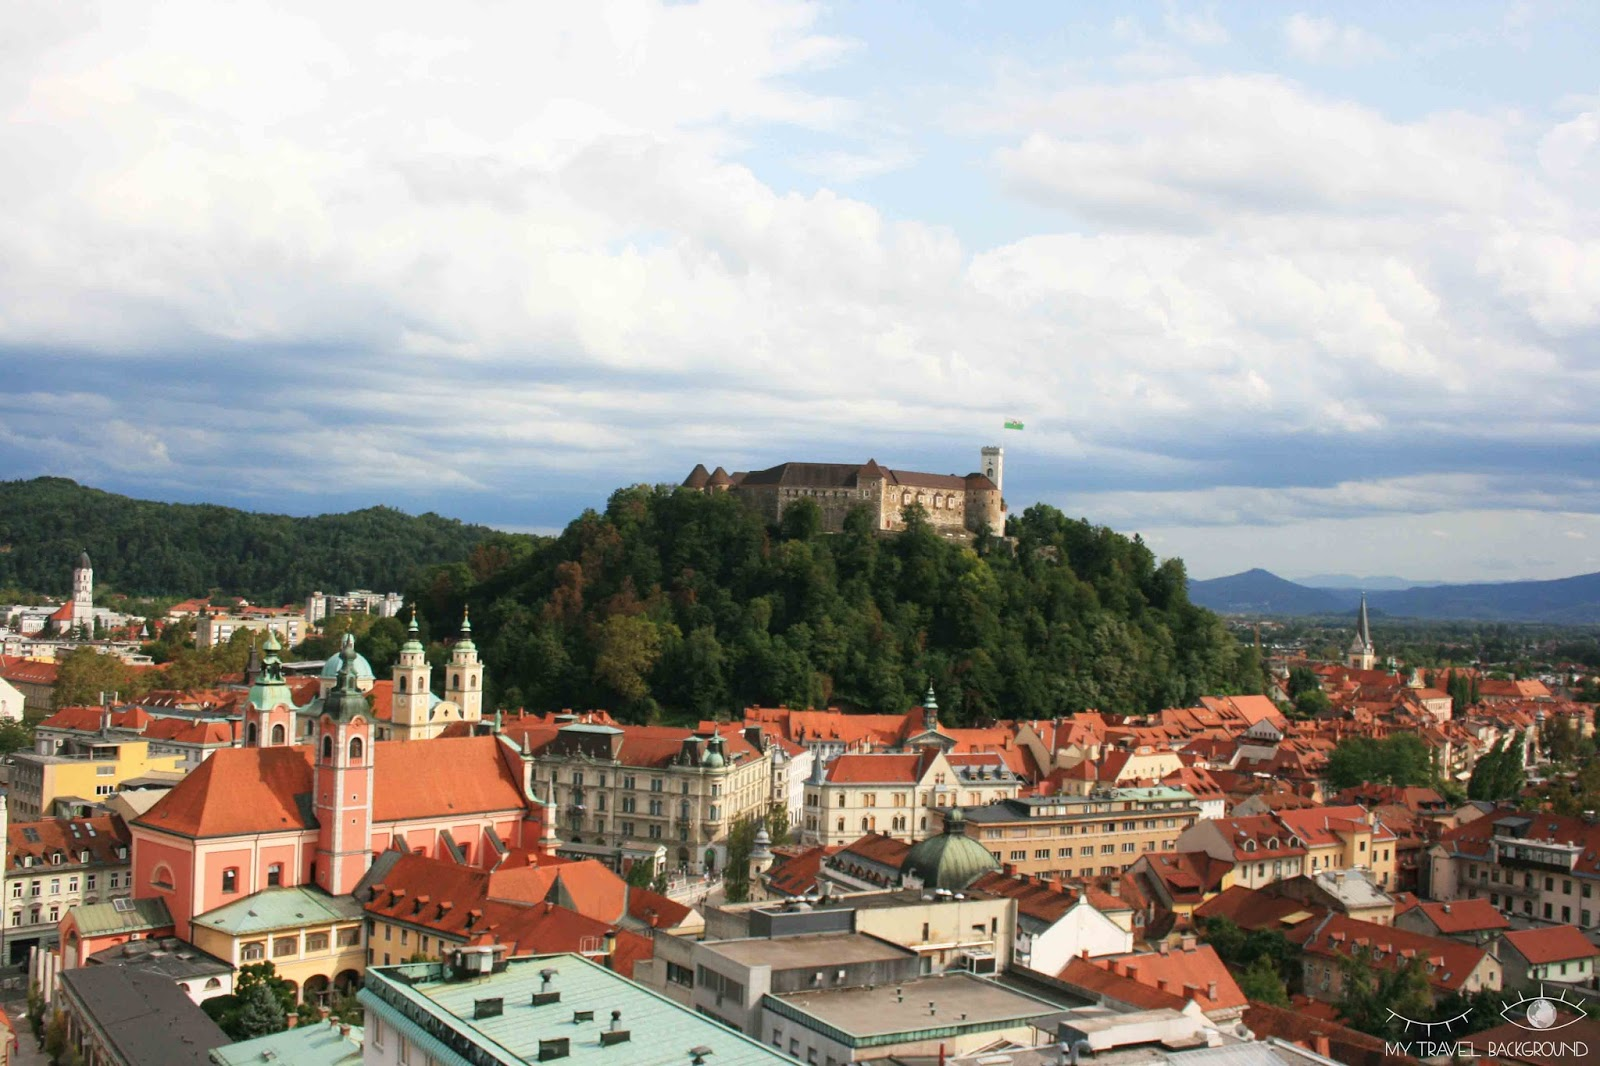 My Travel Background : cartes postales de Slovénie - Ljubljana